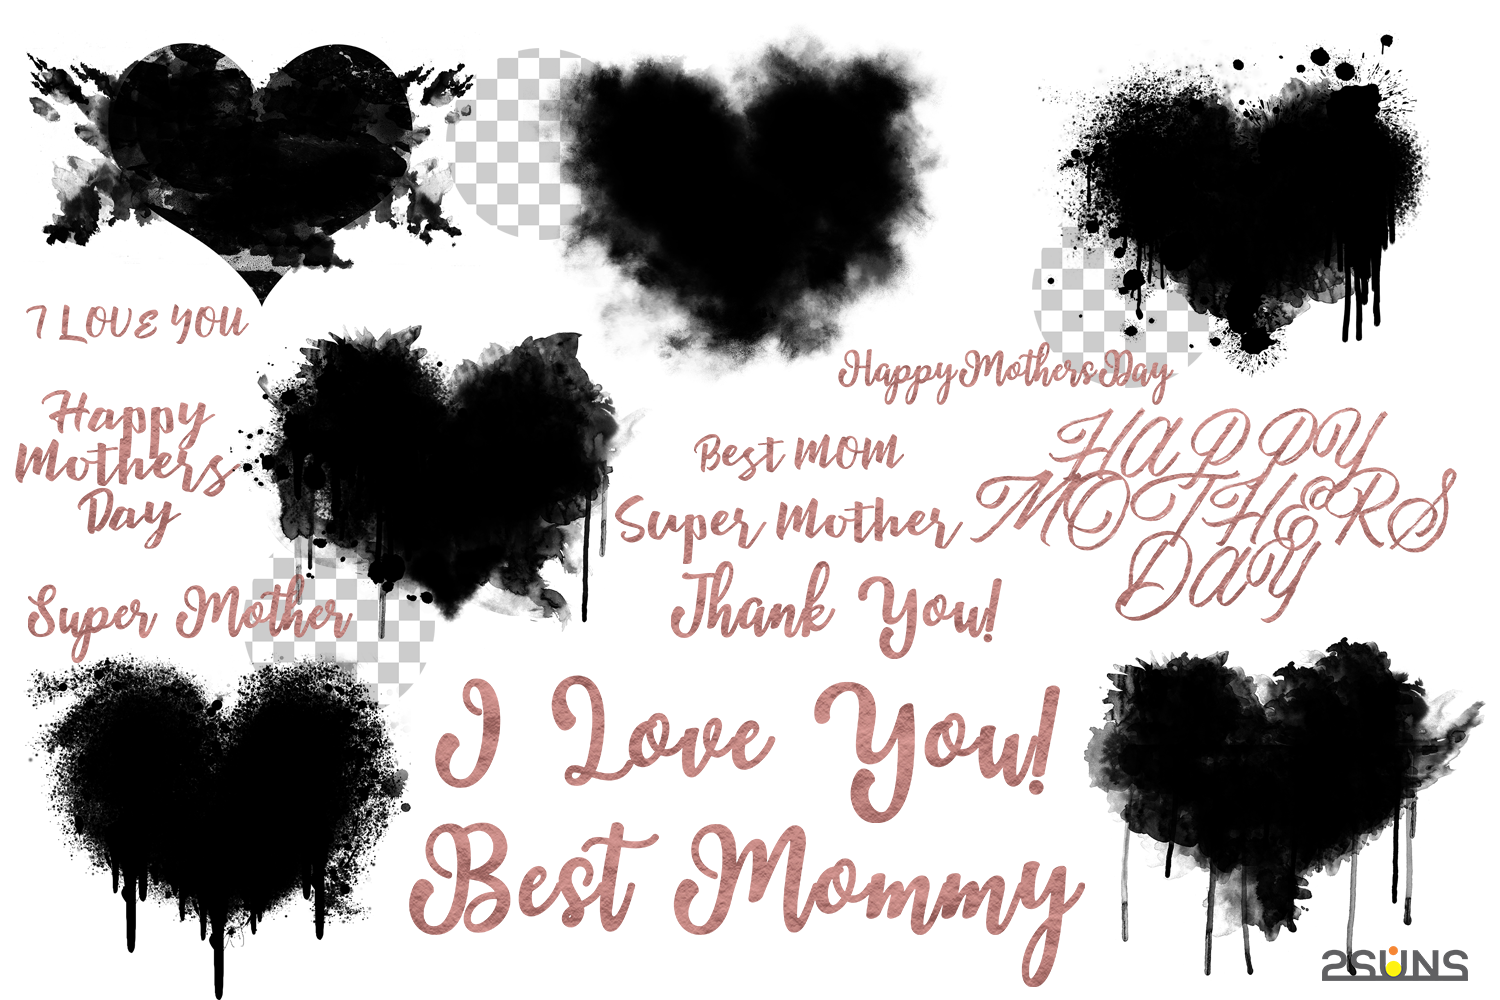 Mothers Day Watercolor Template Watercolor Brush Watecolor By